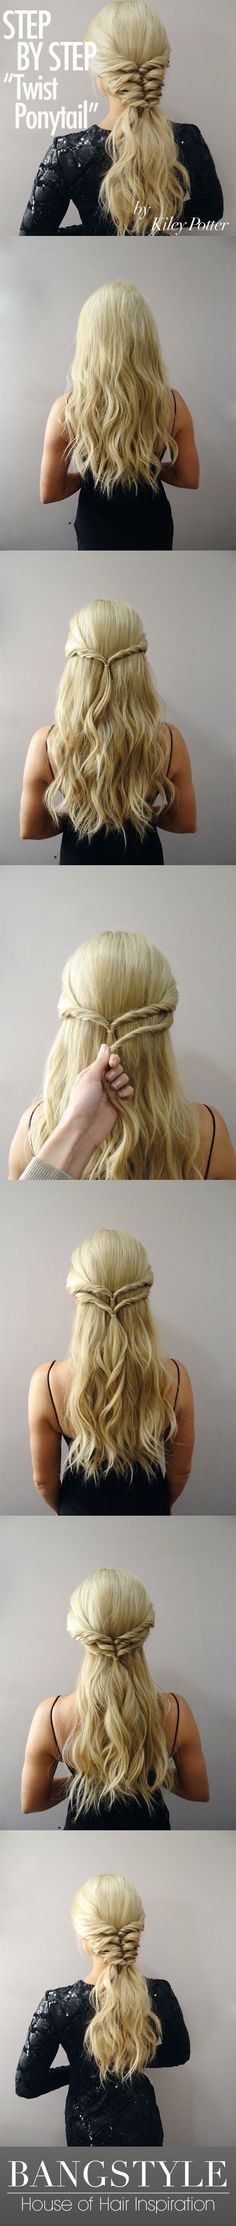 Can't decide between a pony tail and a braid? Bring both together in perfection ...